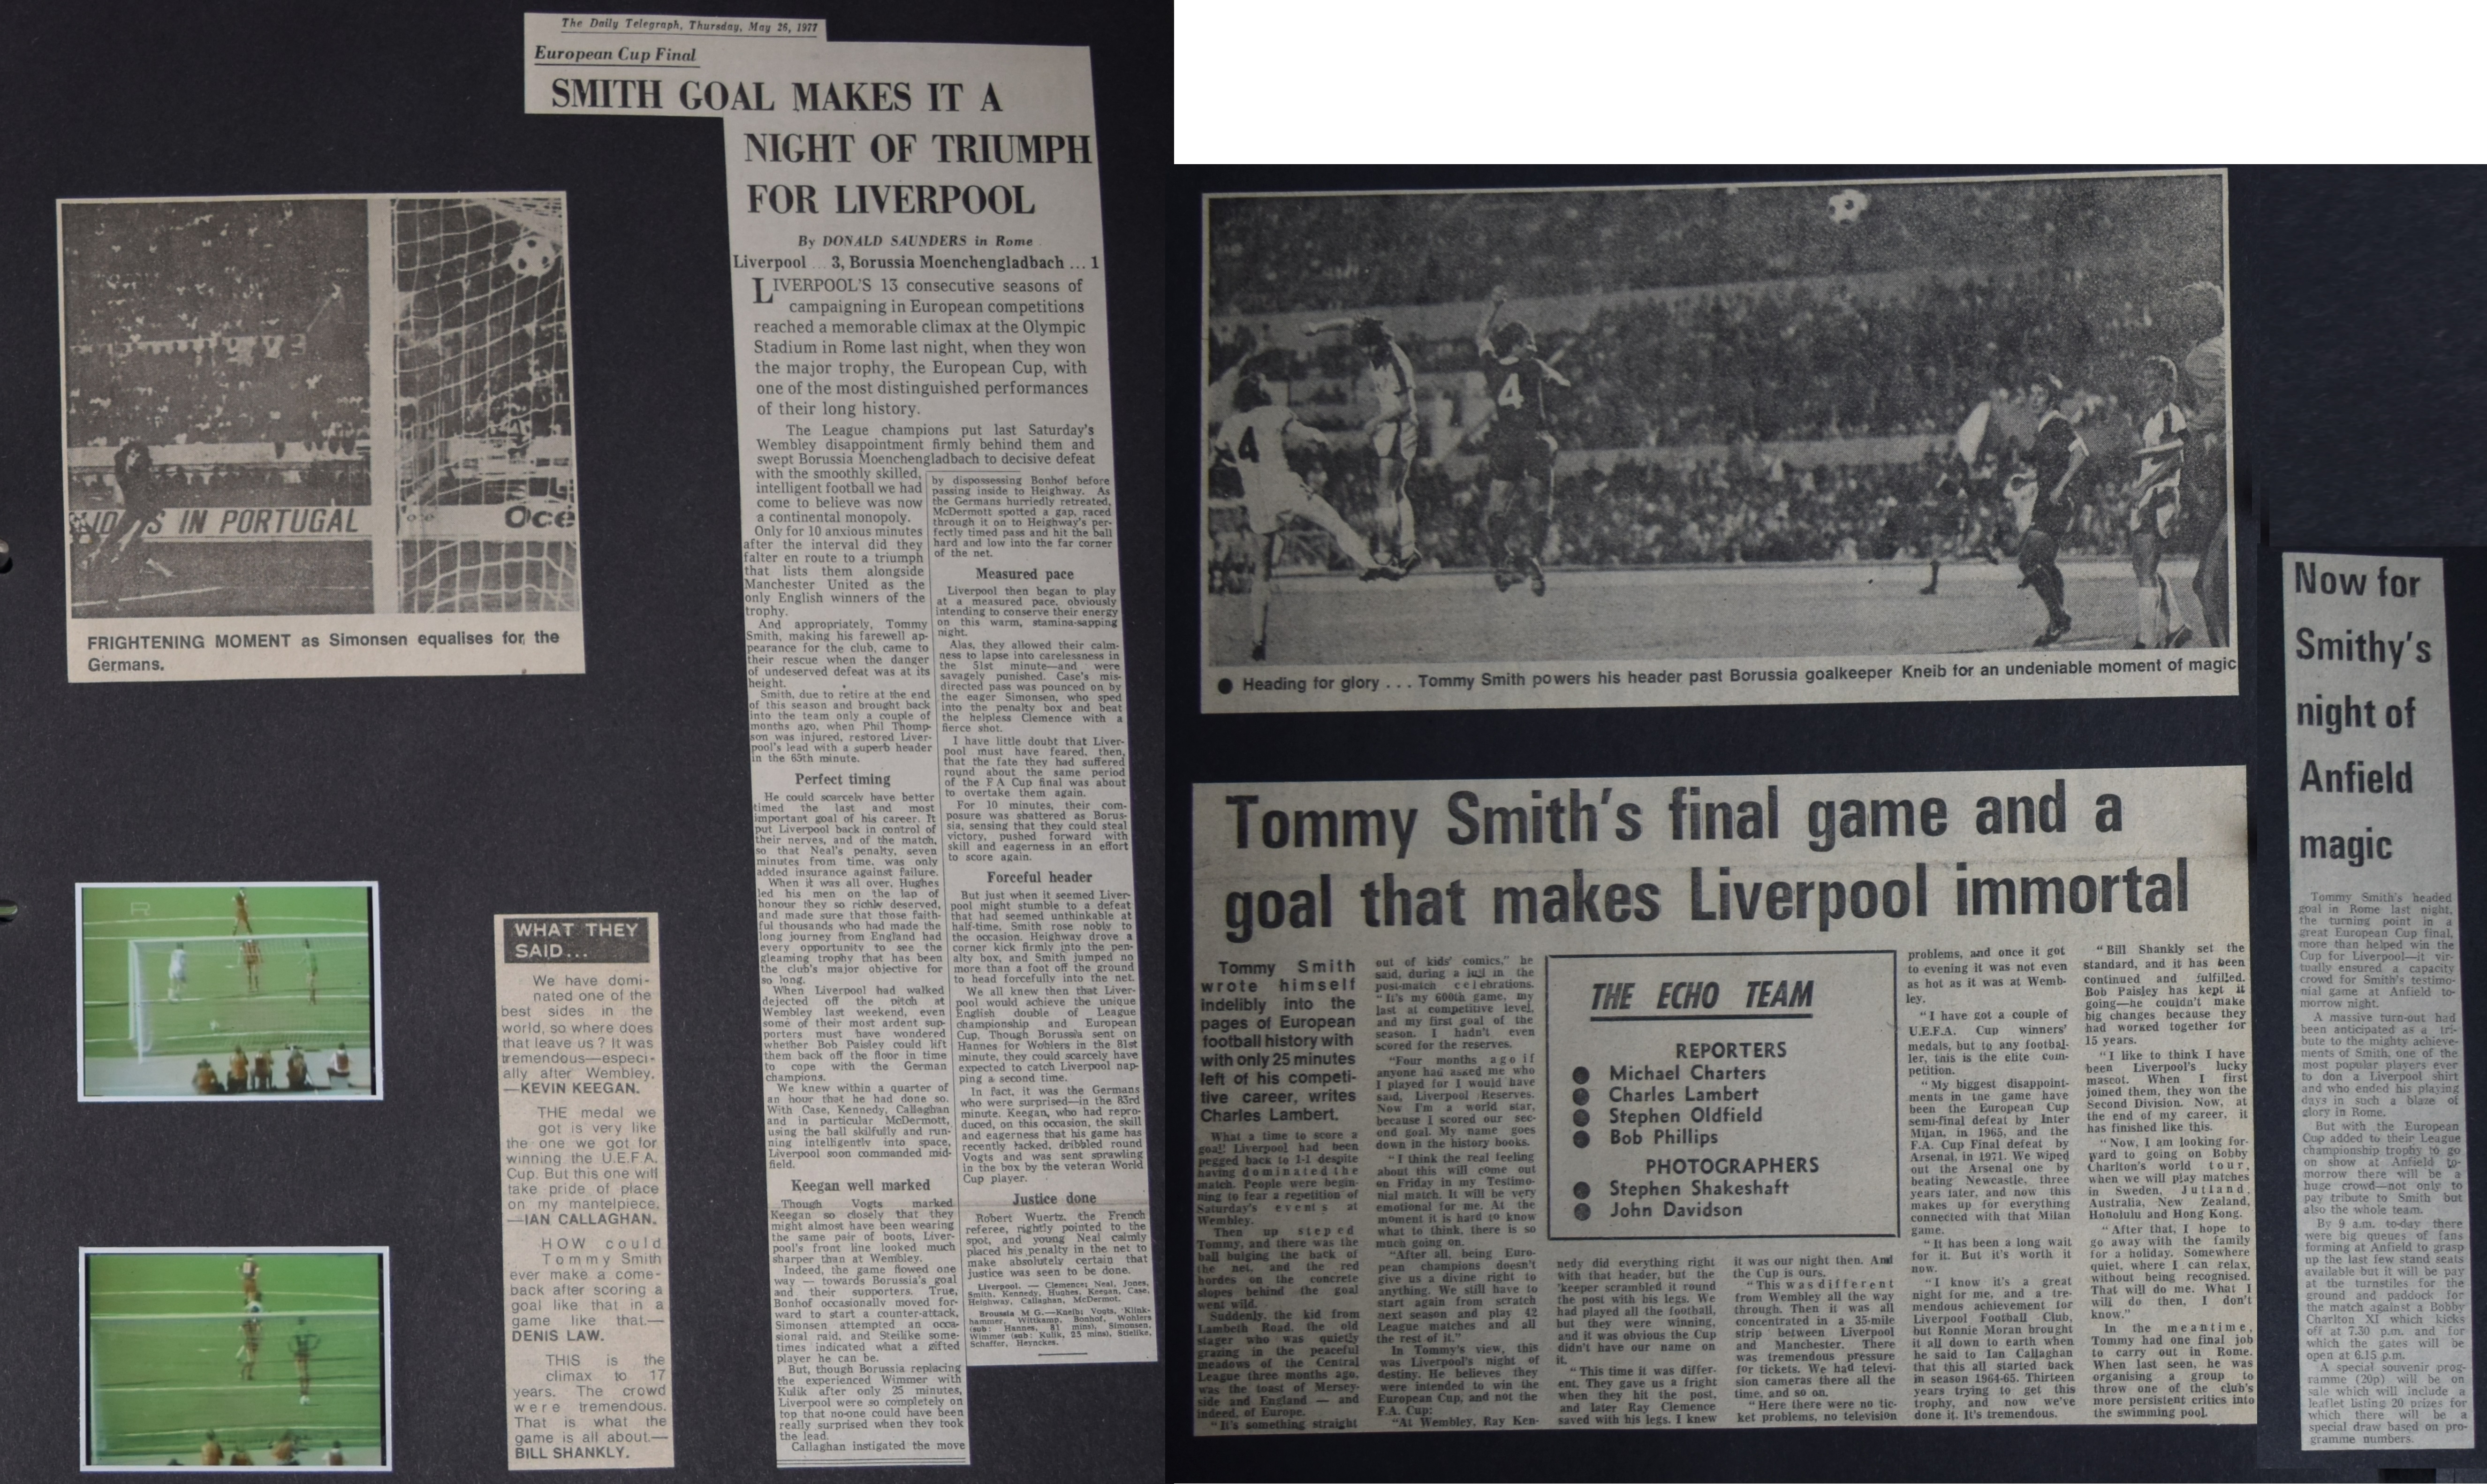 Tommy Smith's final game and a goal that makes Liverpool immortal!